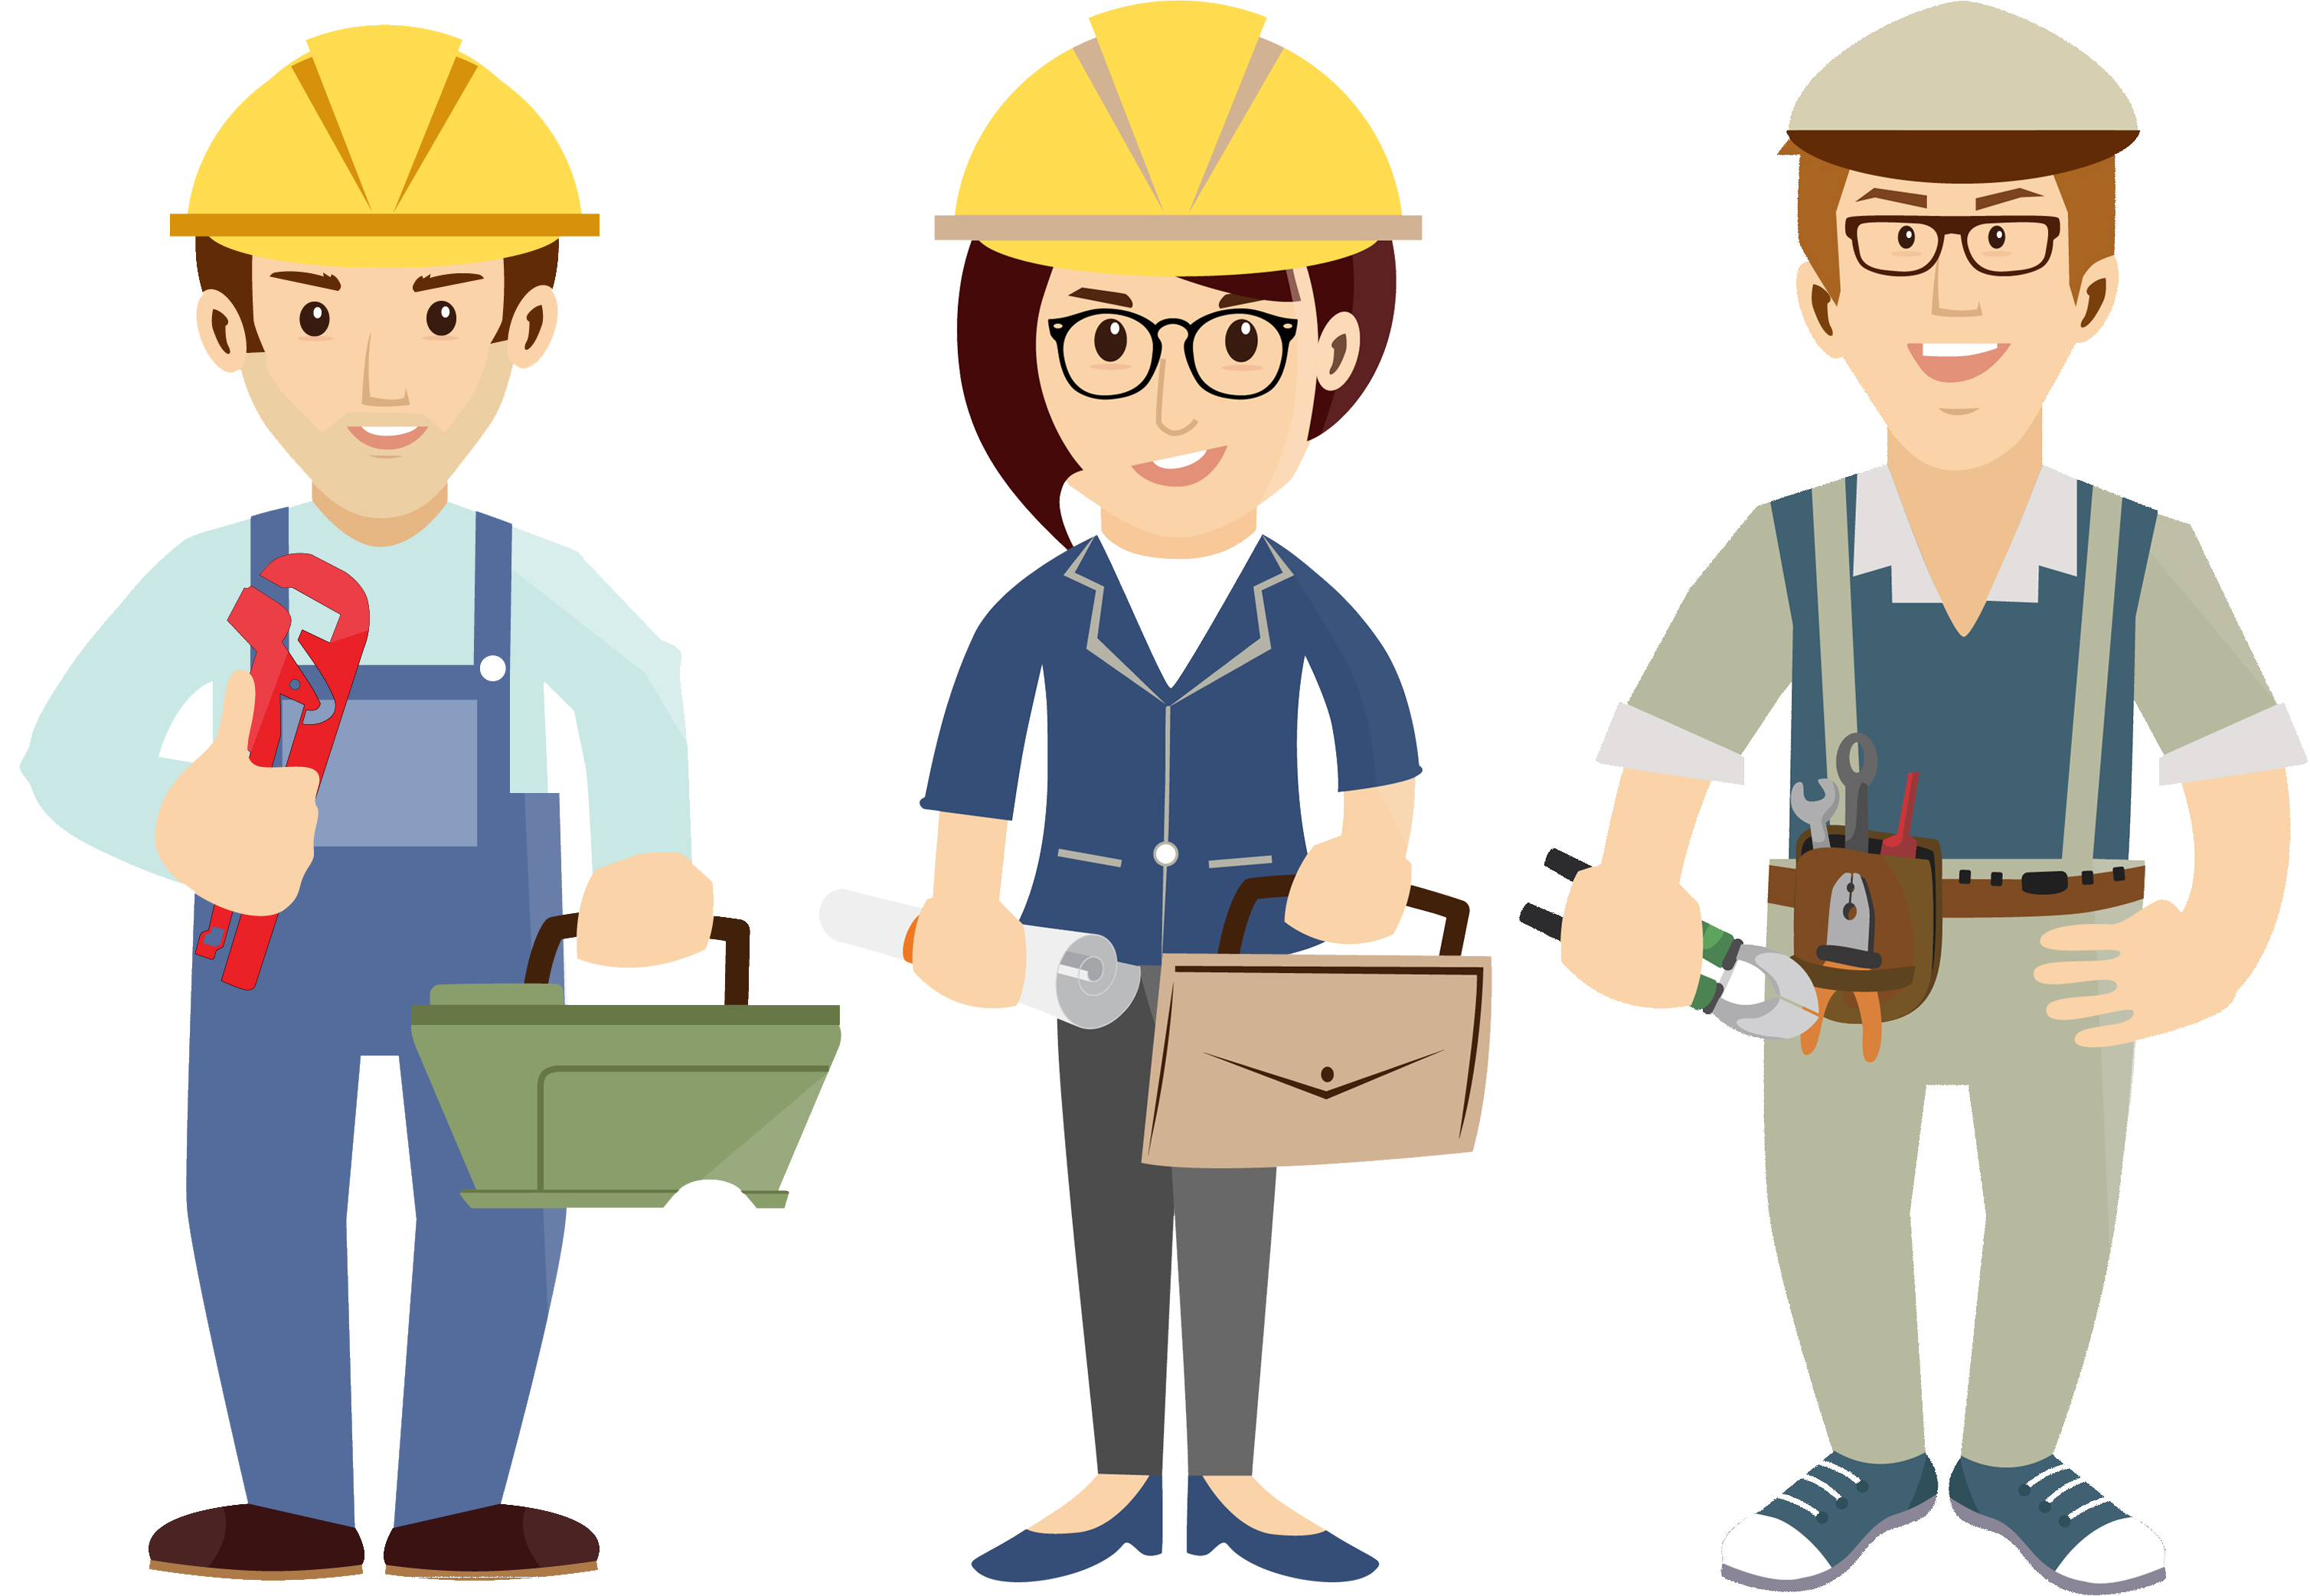 townjobs makes it easy to quality tradesmen reviewed by other homeowners